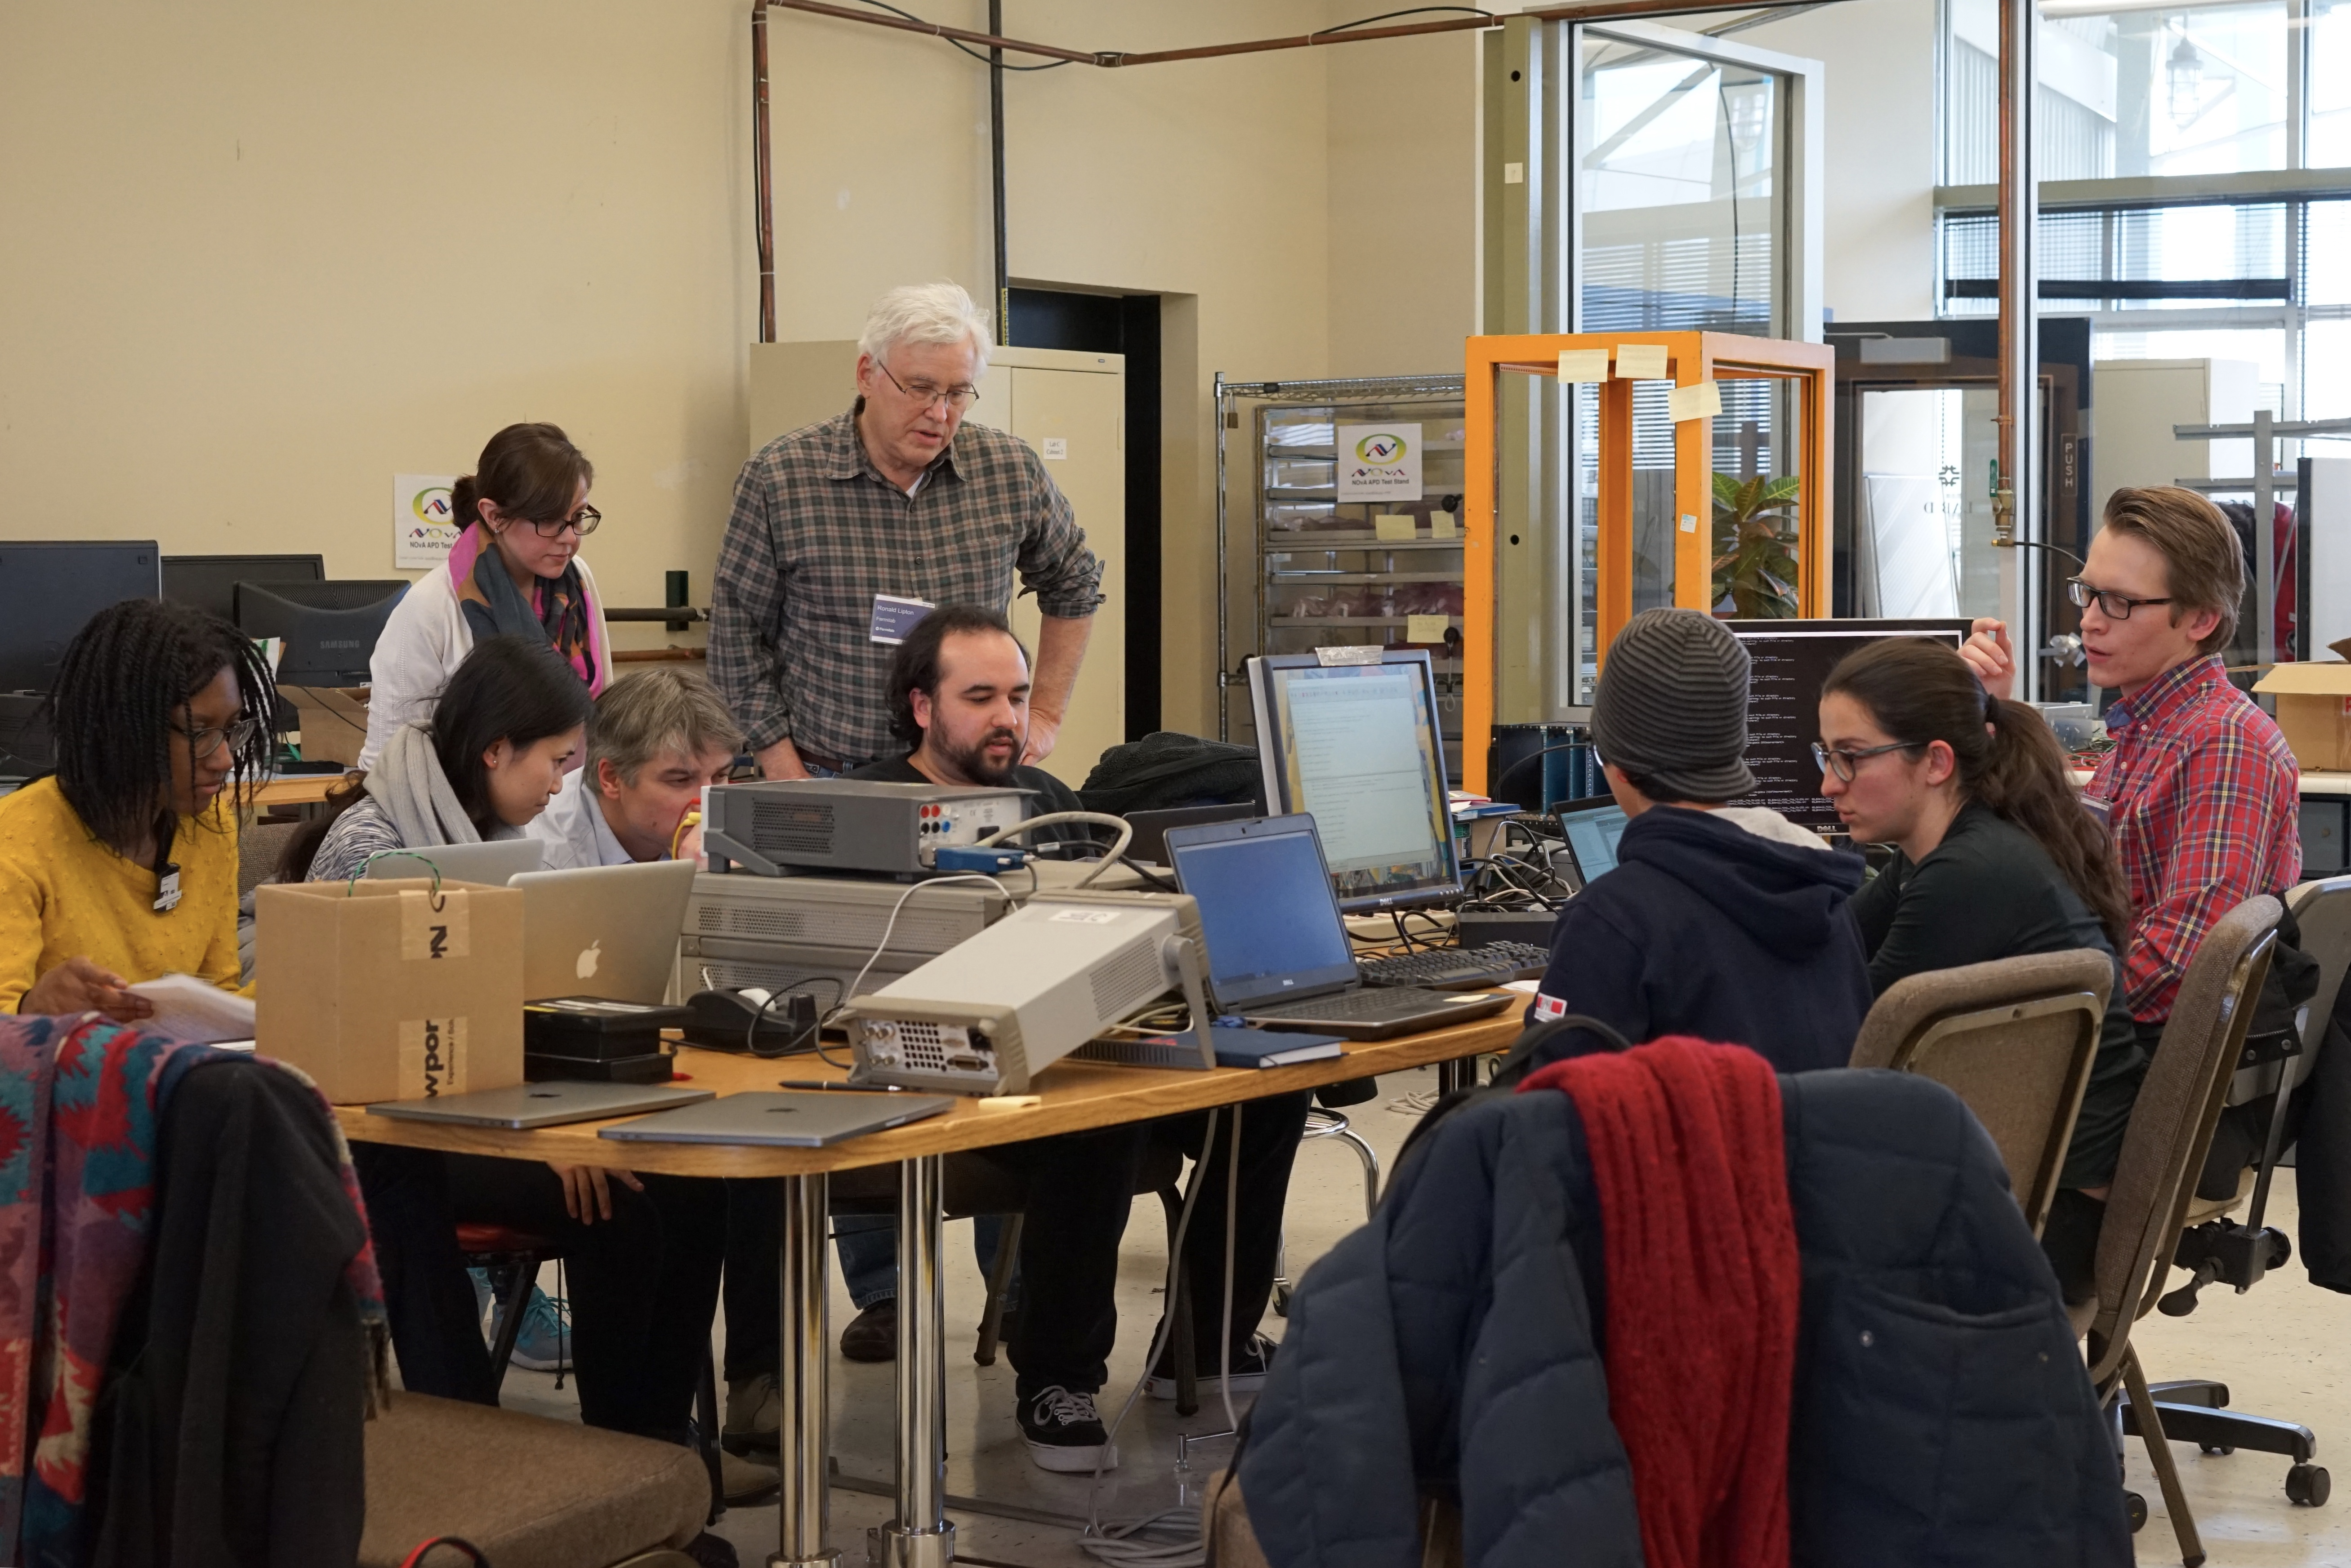 (1/3) Ron Lipton teaches the EDIT 2018 students how to make current-voltage and capacitance-voltage measurements on various silicon detector samples. Photo: Leticia Shaddix